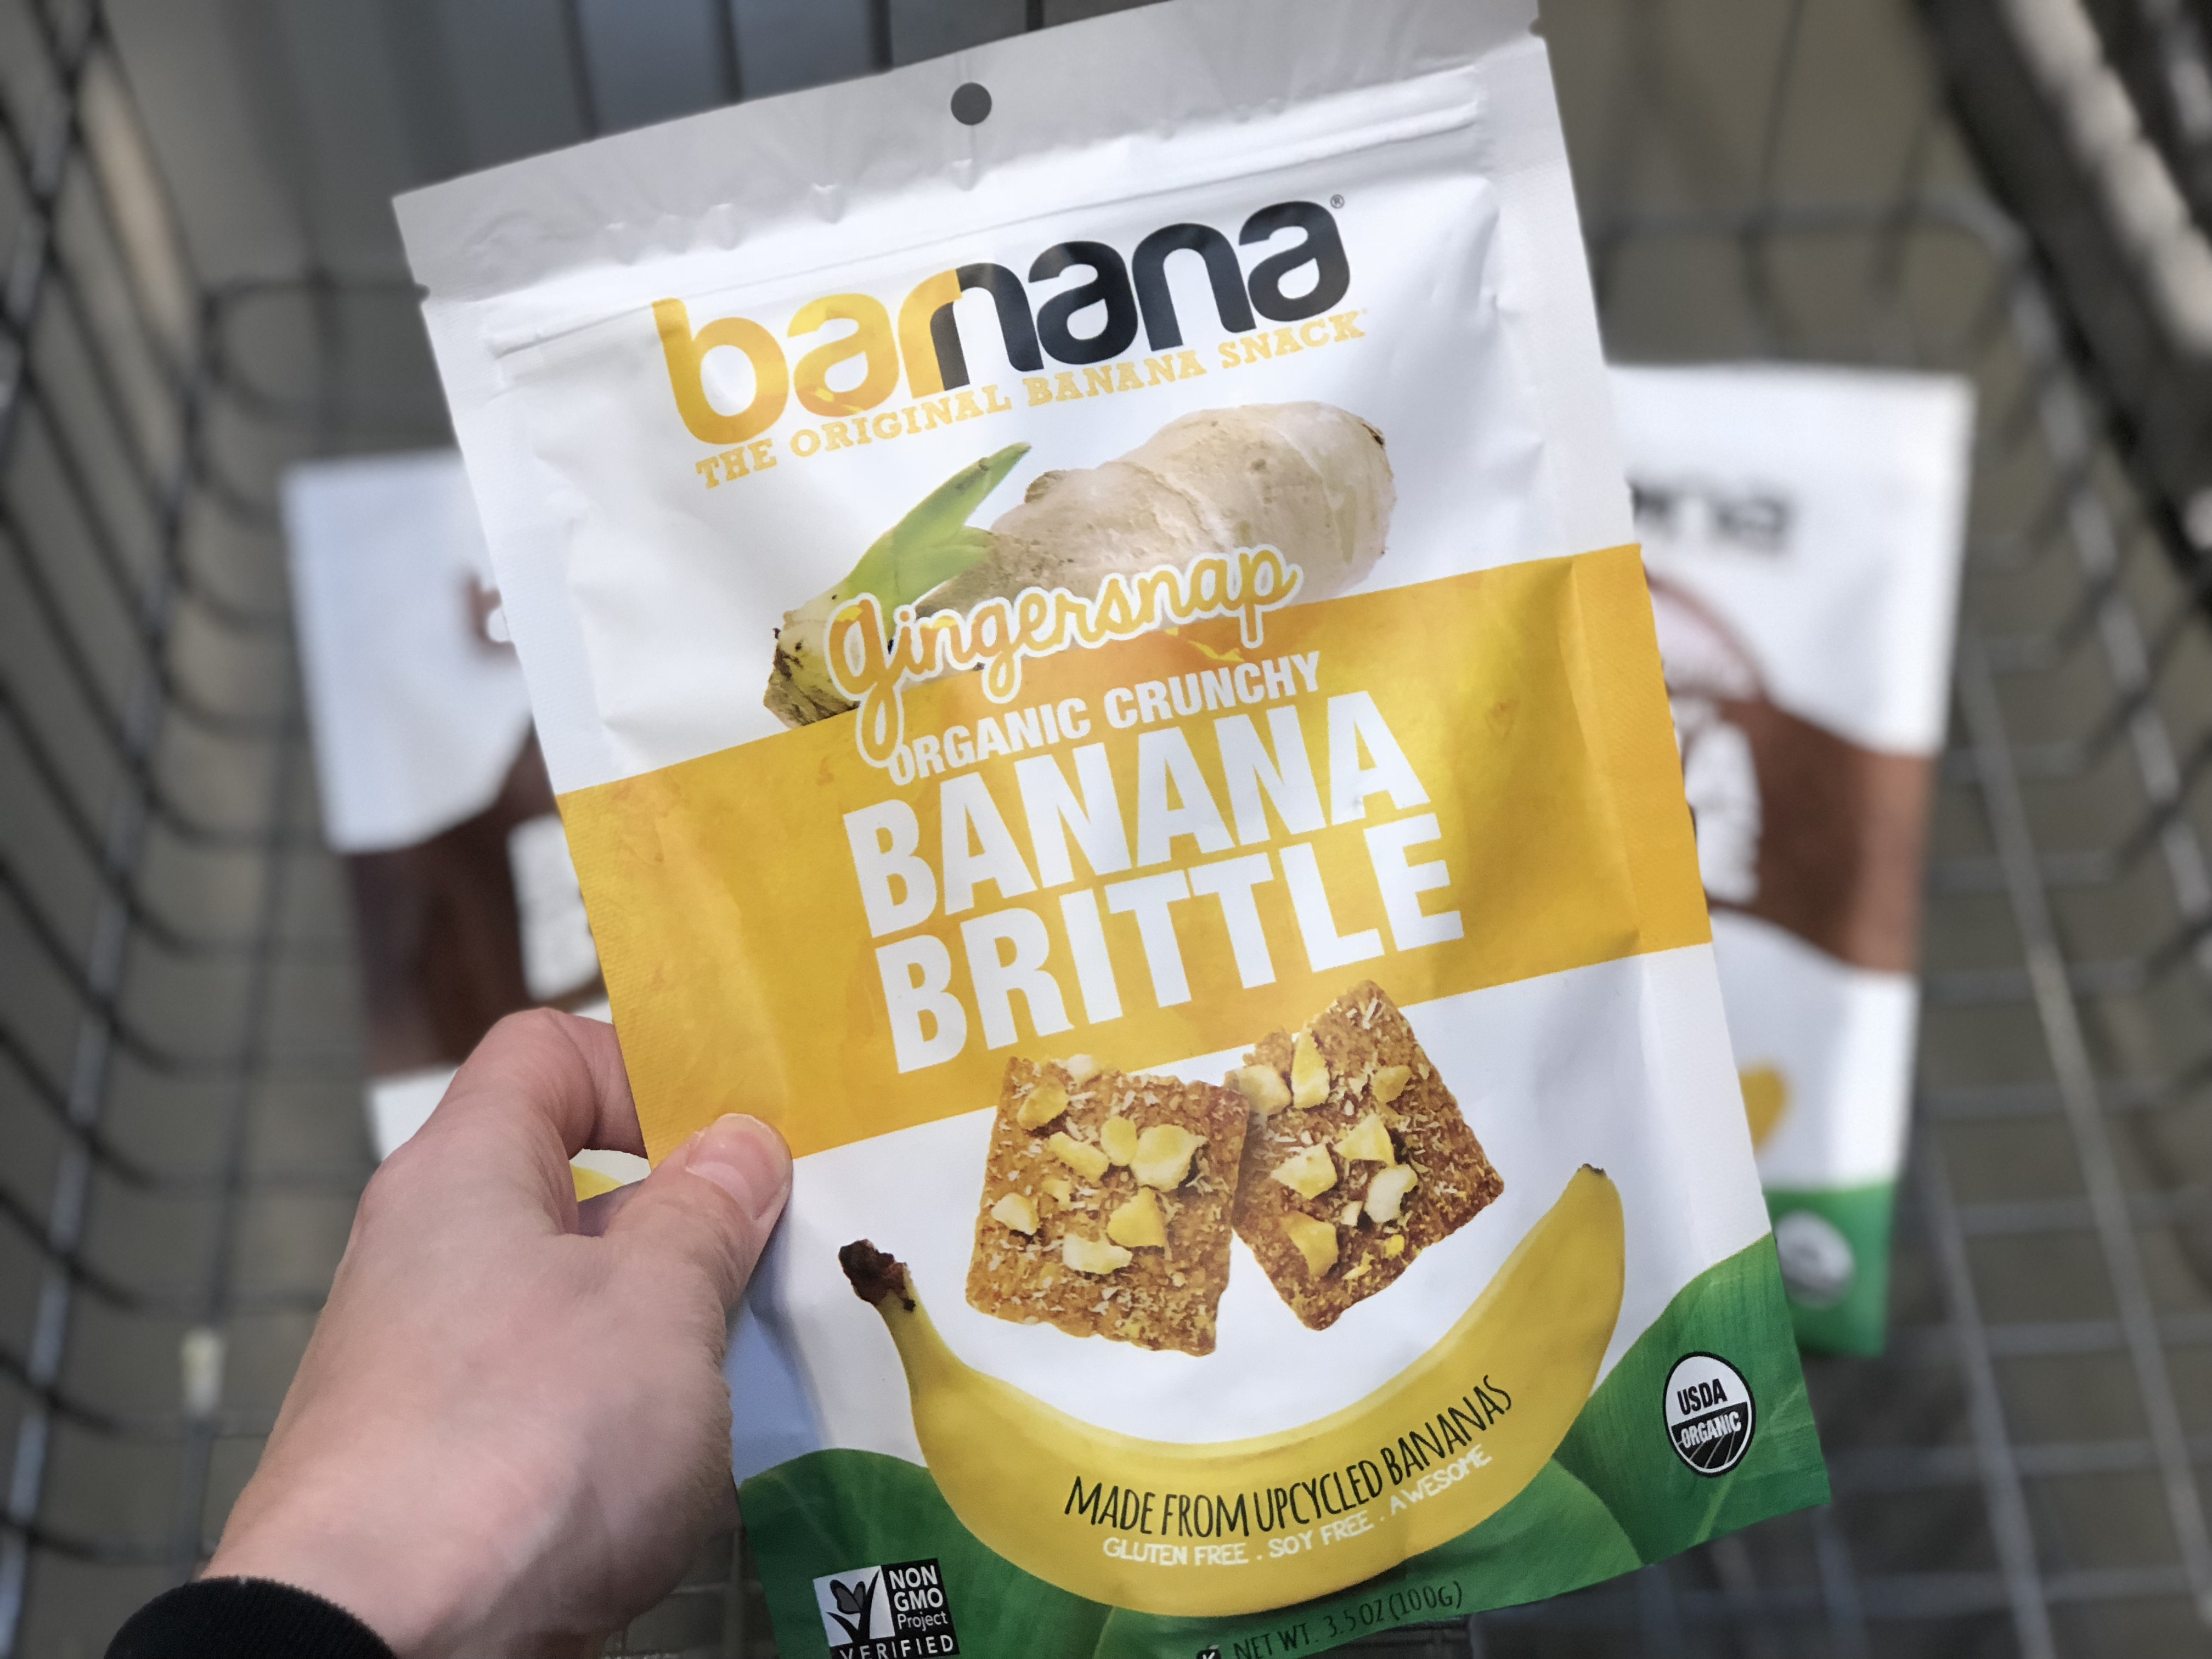 17 practical ways to save at whole foods market – a bag of banana brittle